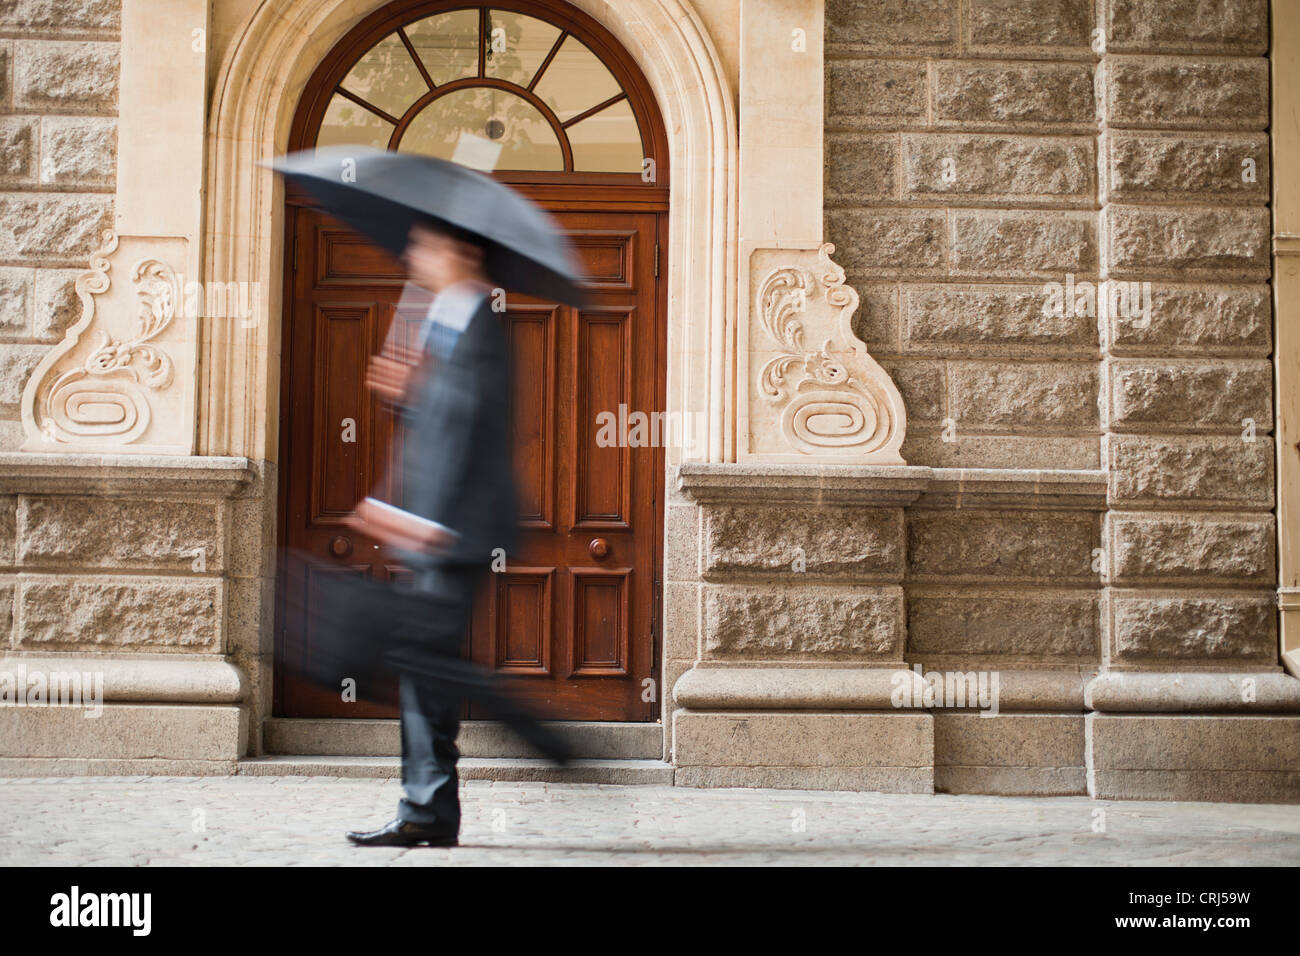 Businessman carrying umbrella on street - Stock Image